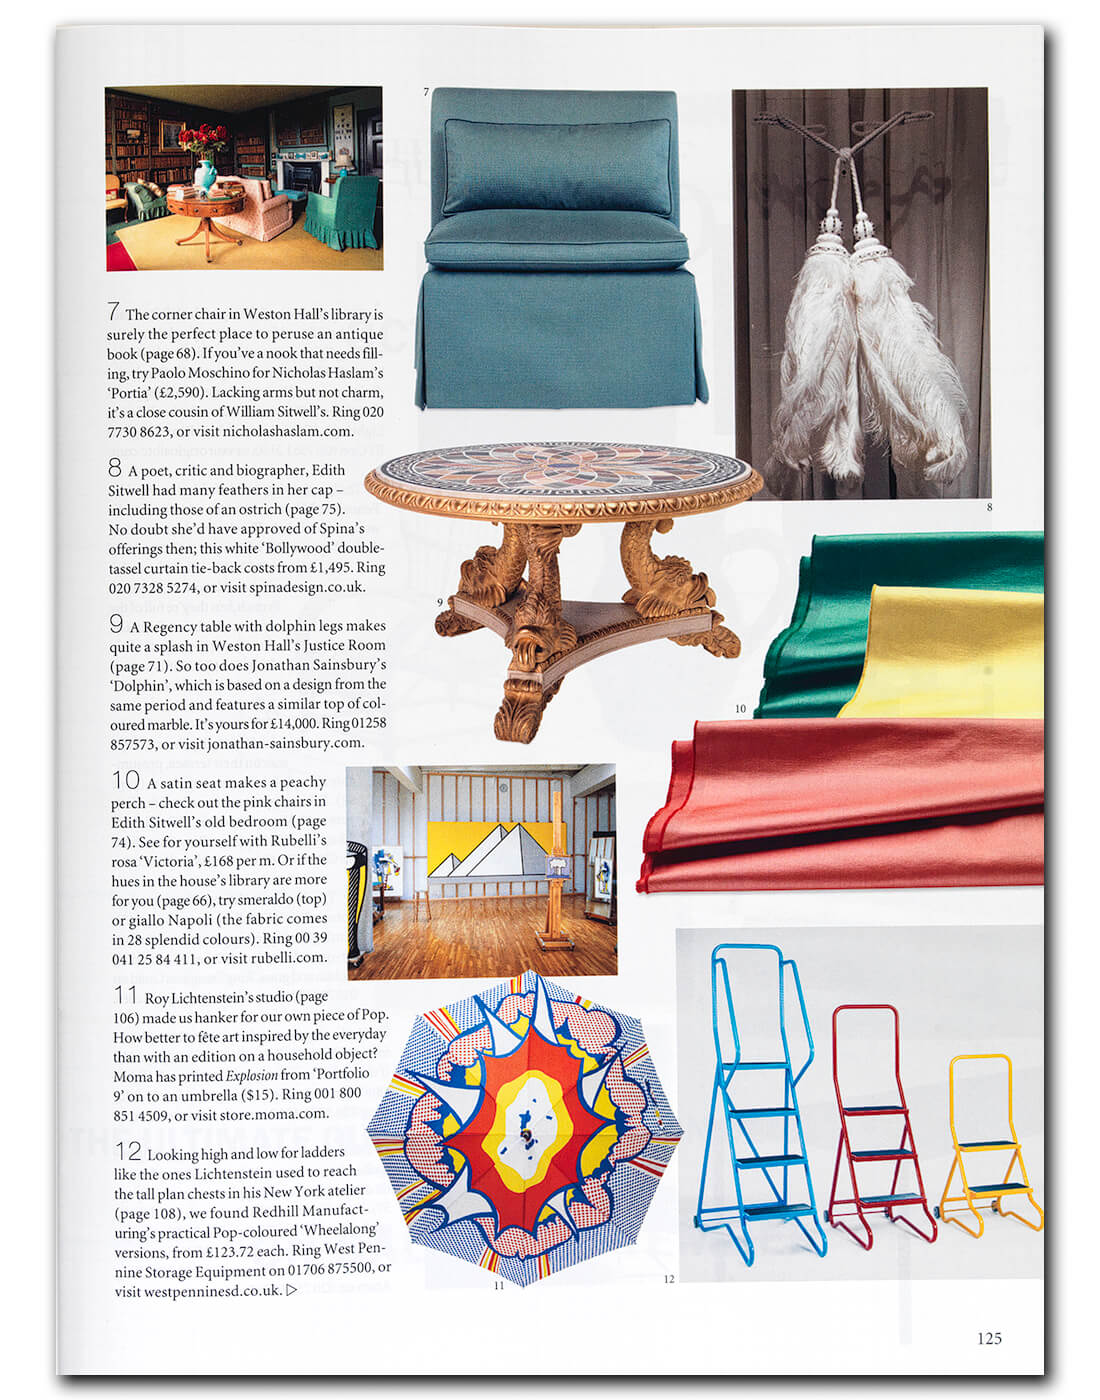 The World of Interiors September-2019 Content